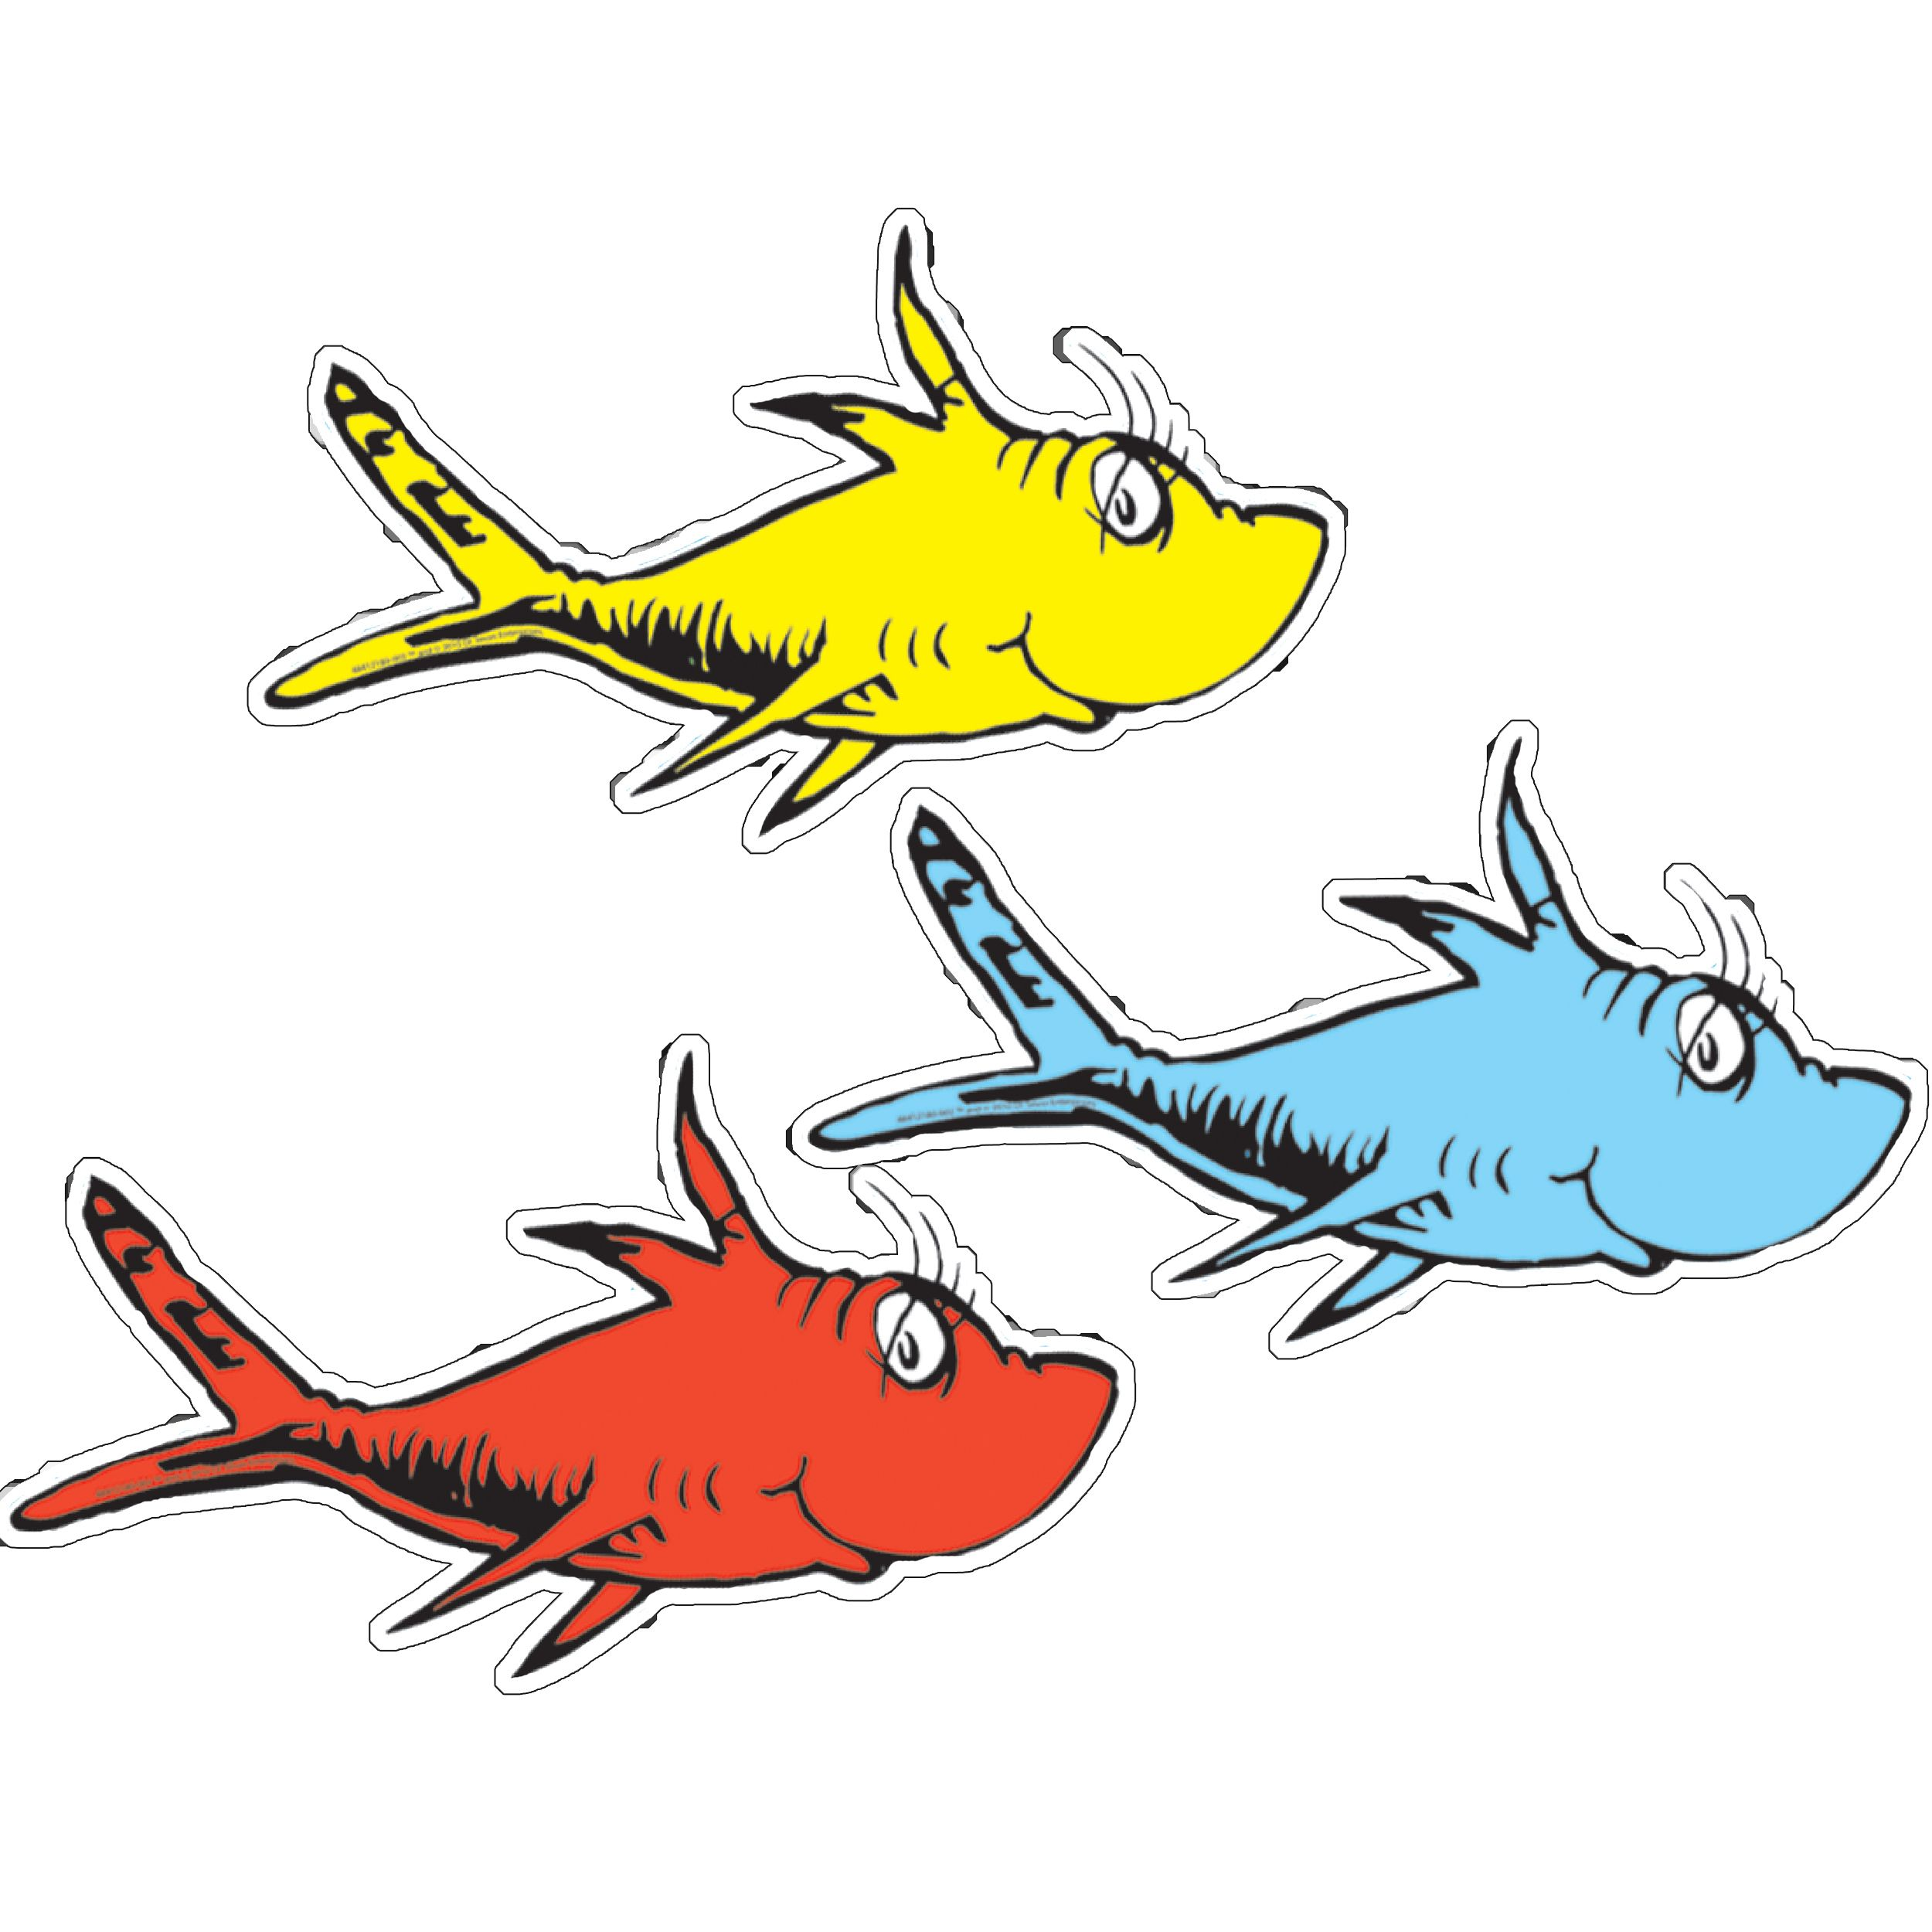 Dr Seuss One Fish Two Fish Assorted Paper Cut Outs